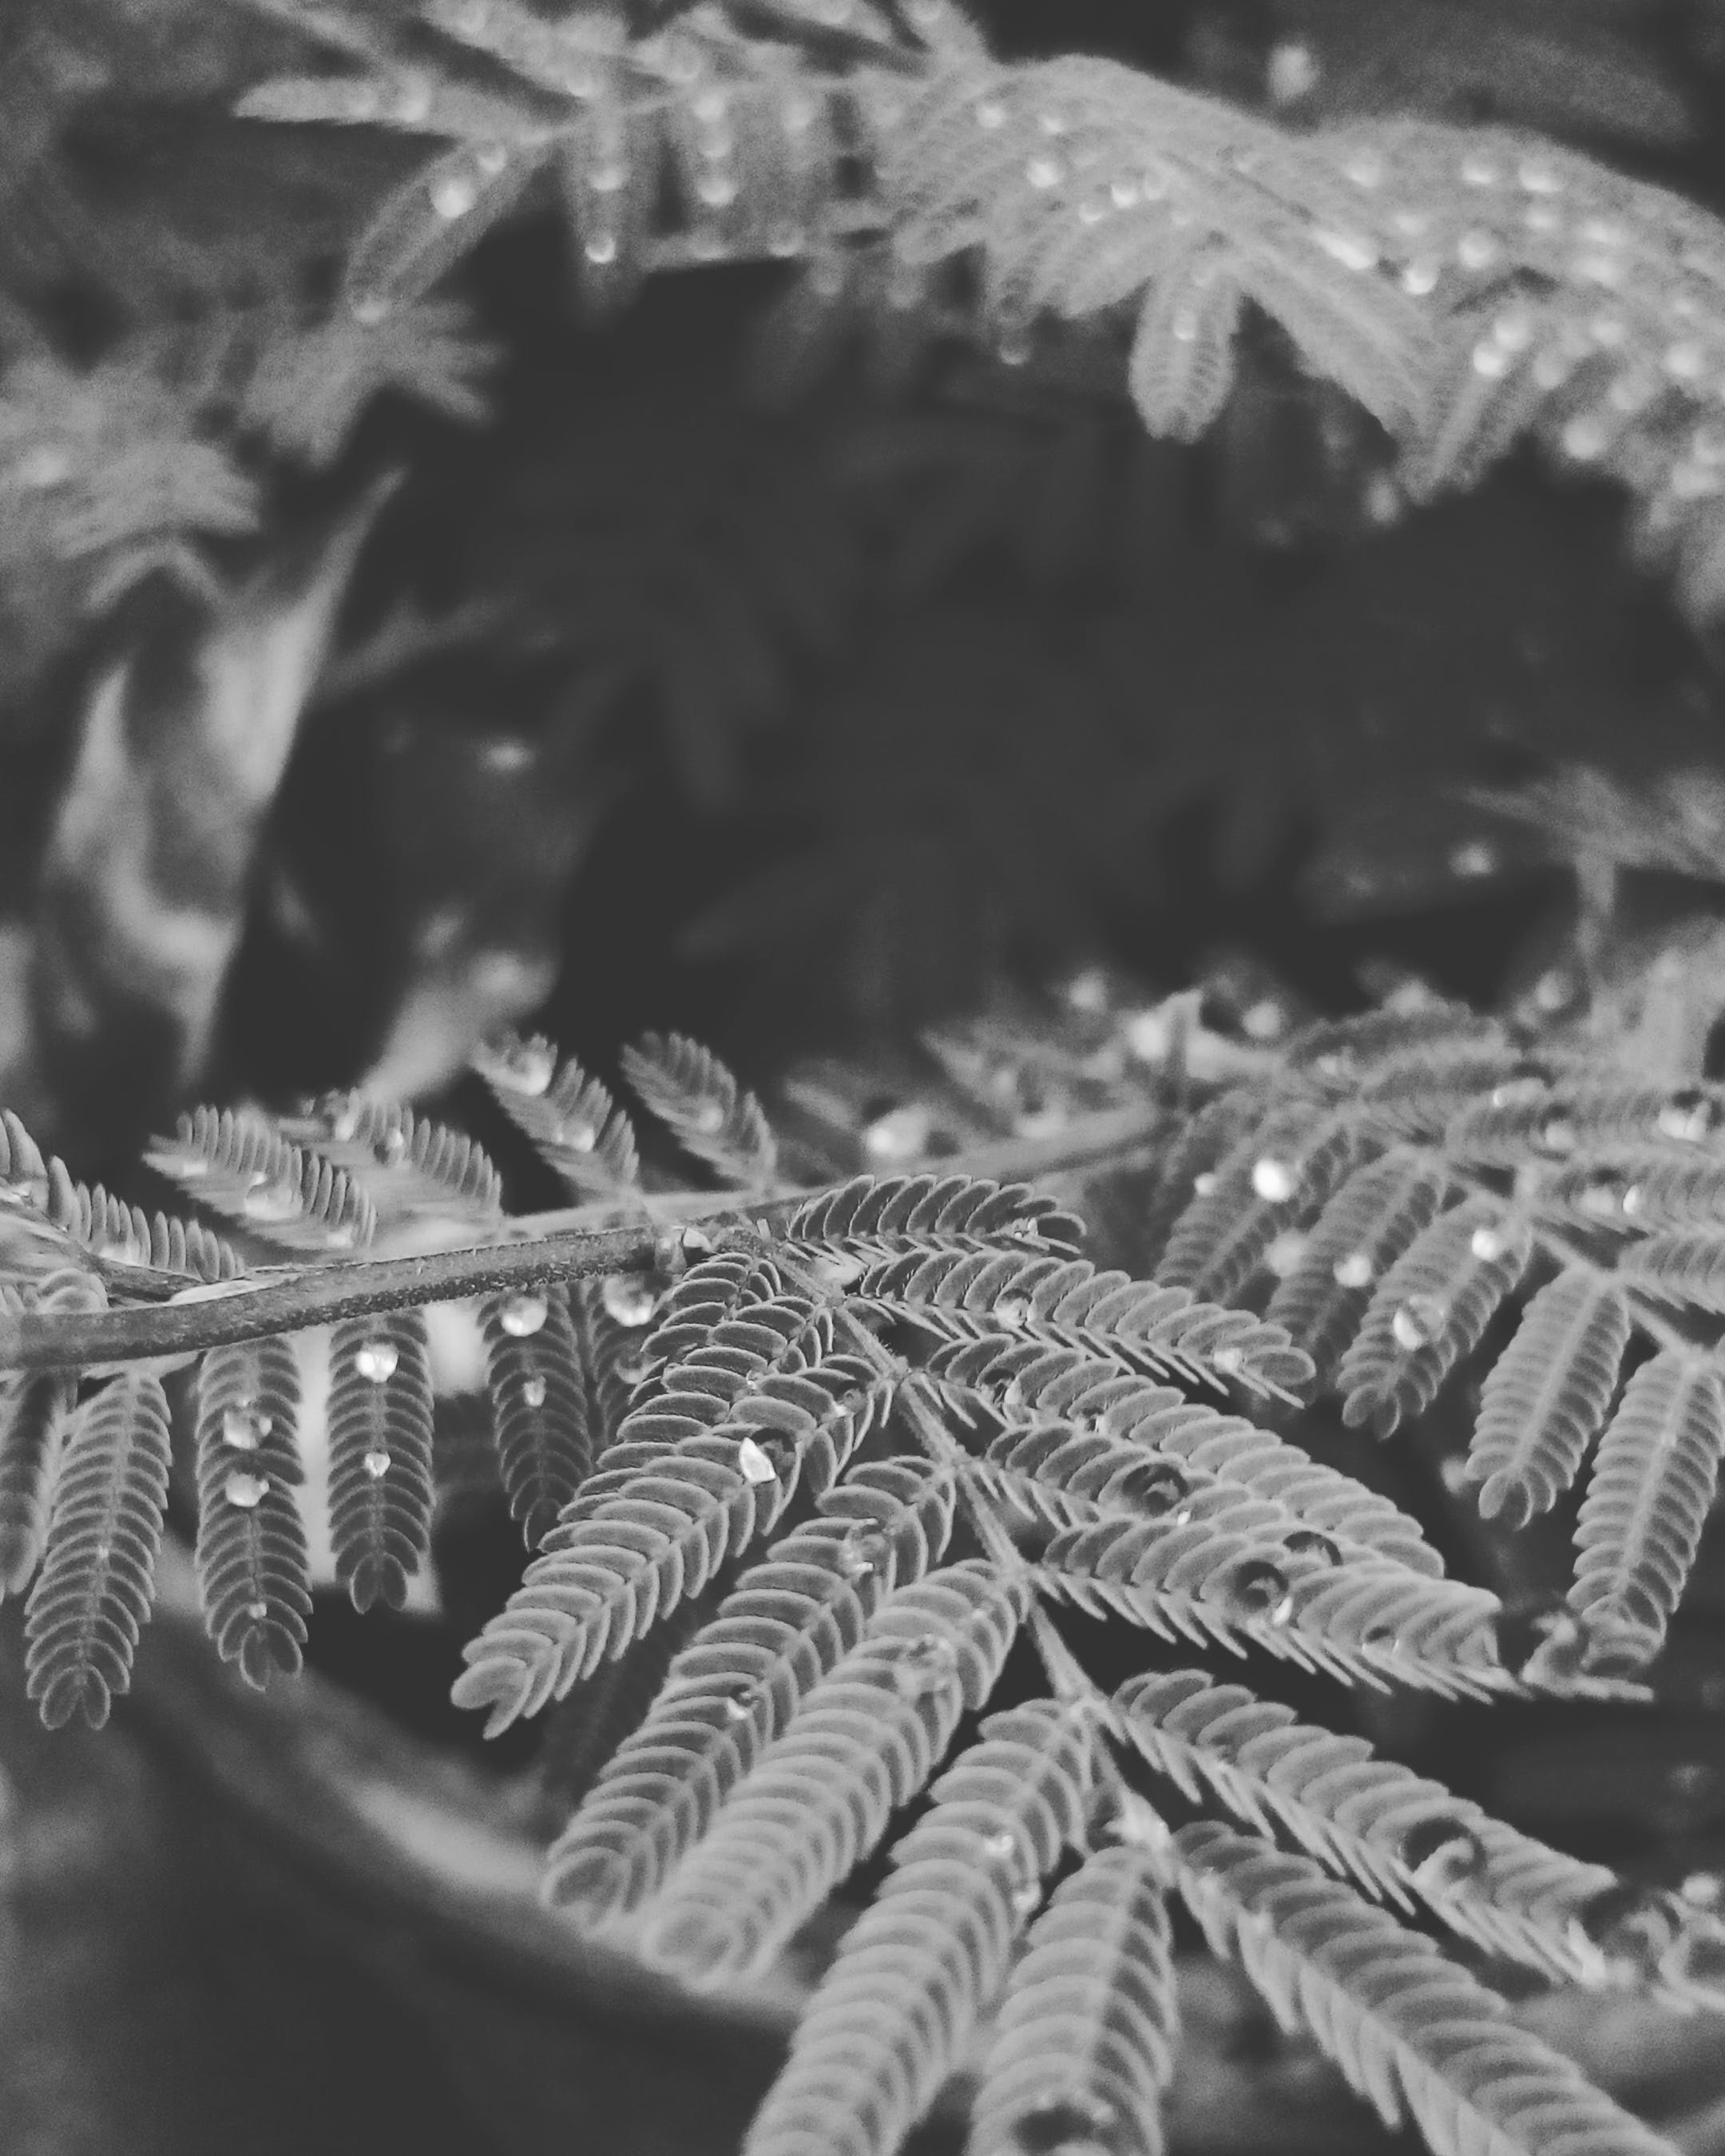 Grayscale Photo of Fern Plant With Dew Drops